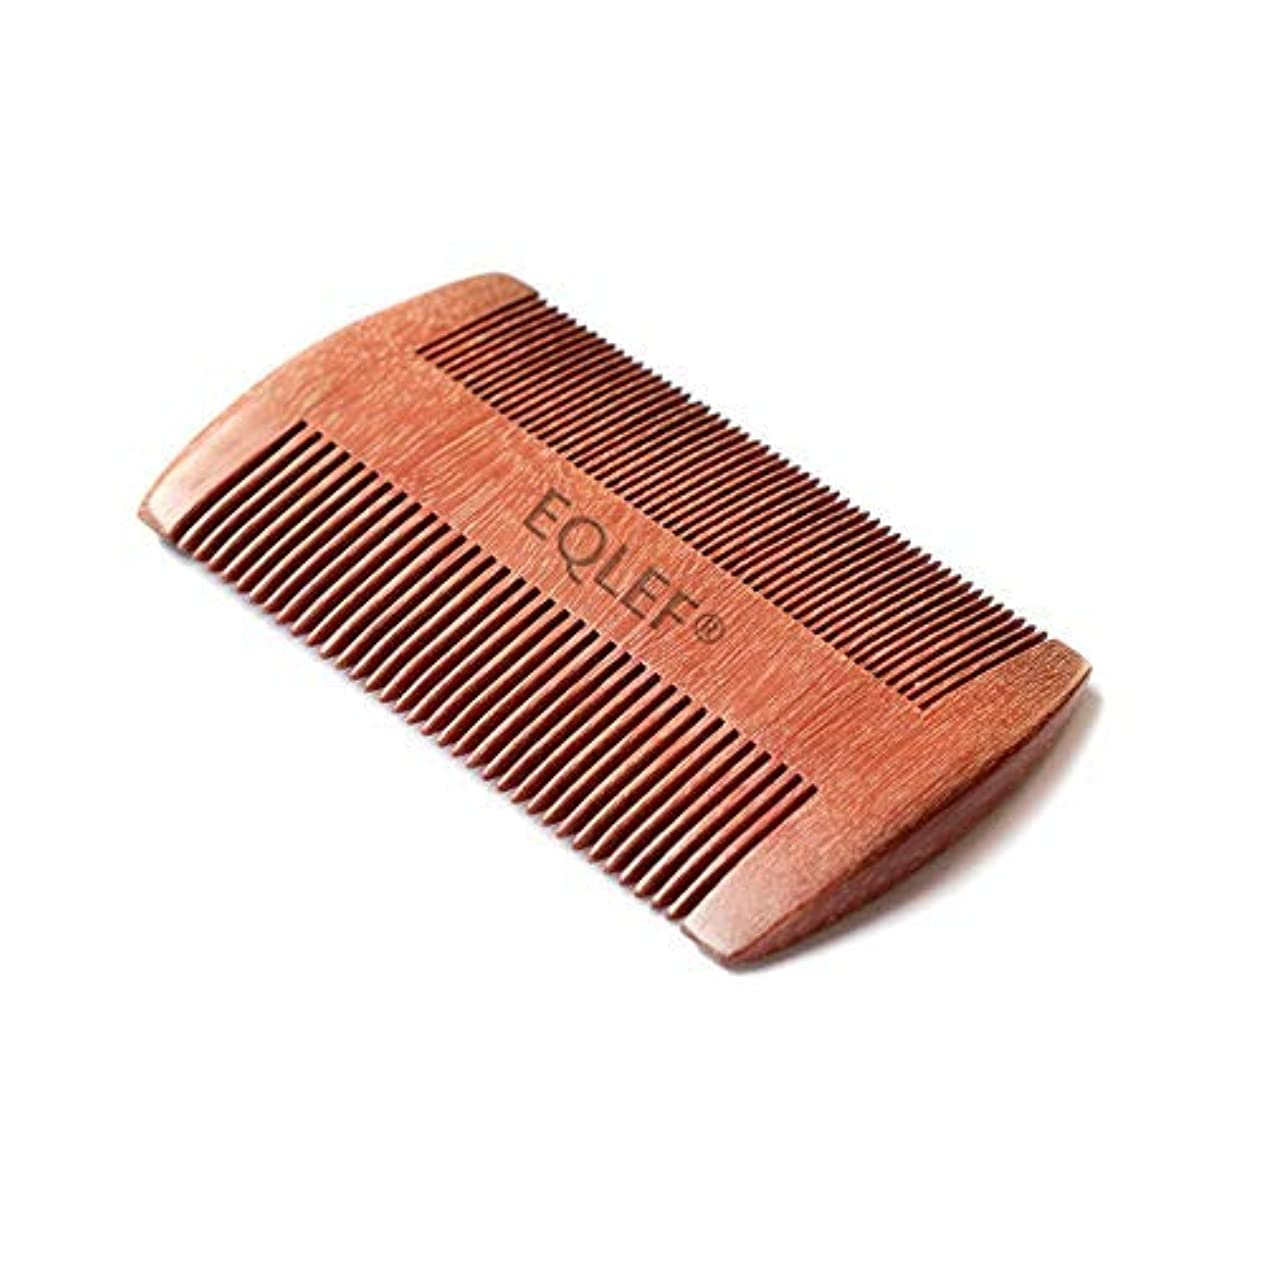 滅多ある意外EQLEF? Red sandalwood no static handmade comb, Pocket comb (beard) [並行輸入品]